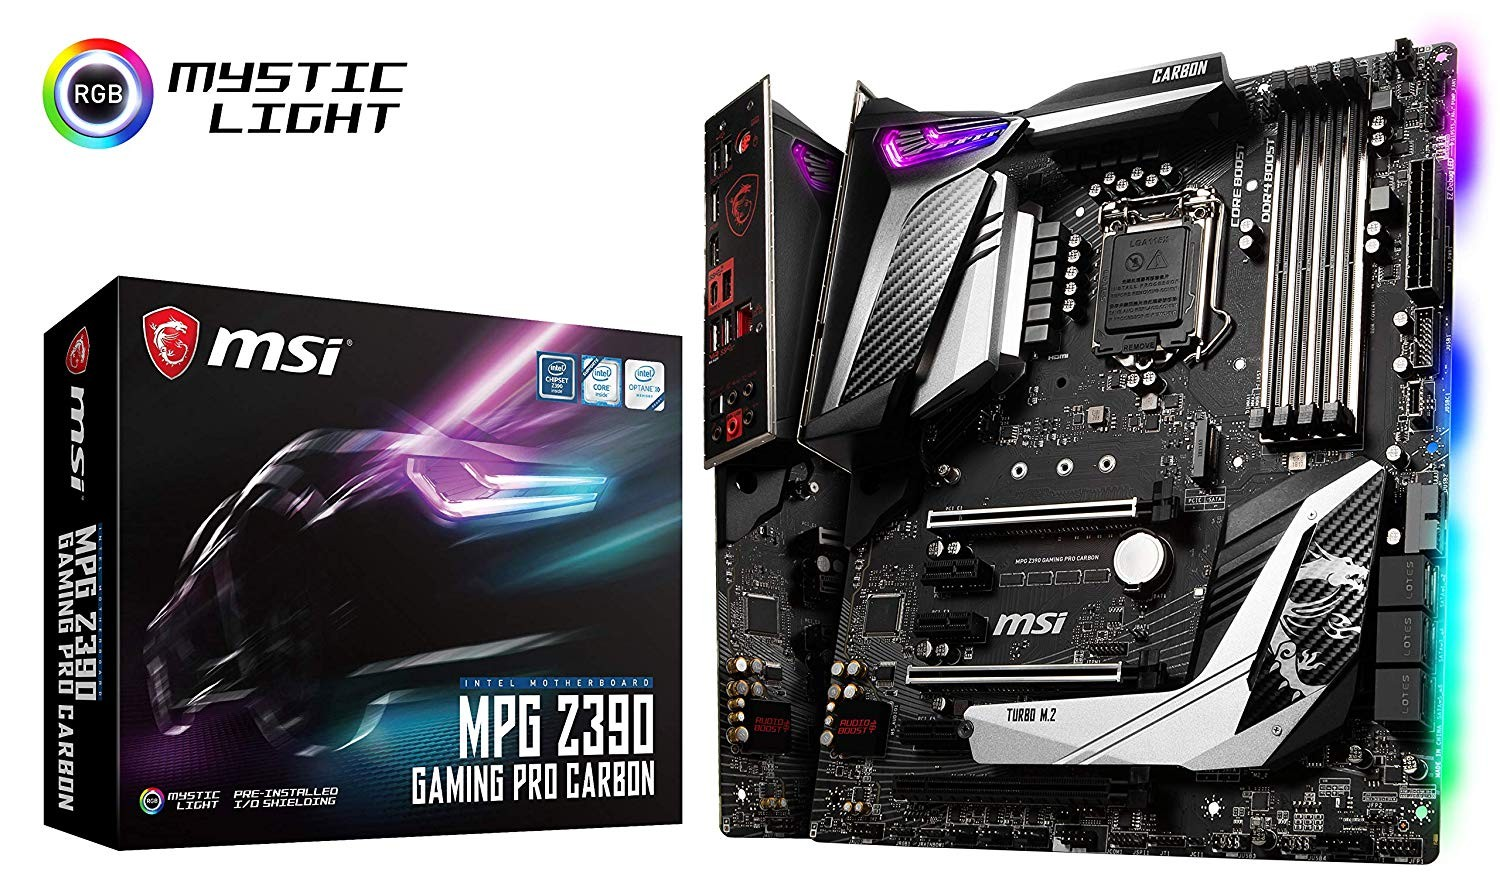 Image 1 of Msi Intel Z390 Socket 1151 Atx Gaming Motherboard Mystic Light M.2 Shield Frozr Audio Boost Z390 GAMING PRO CARBON